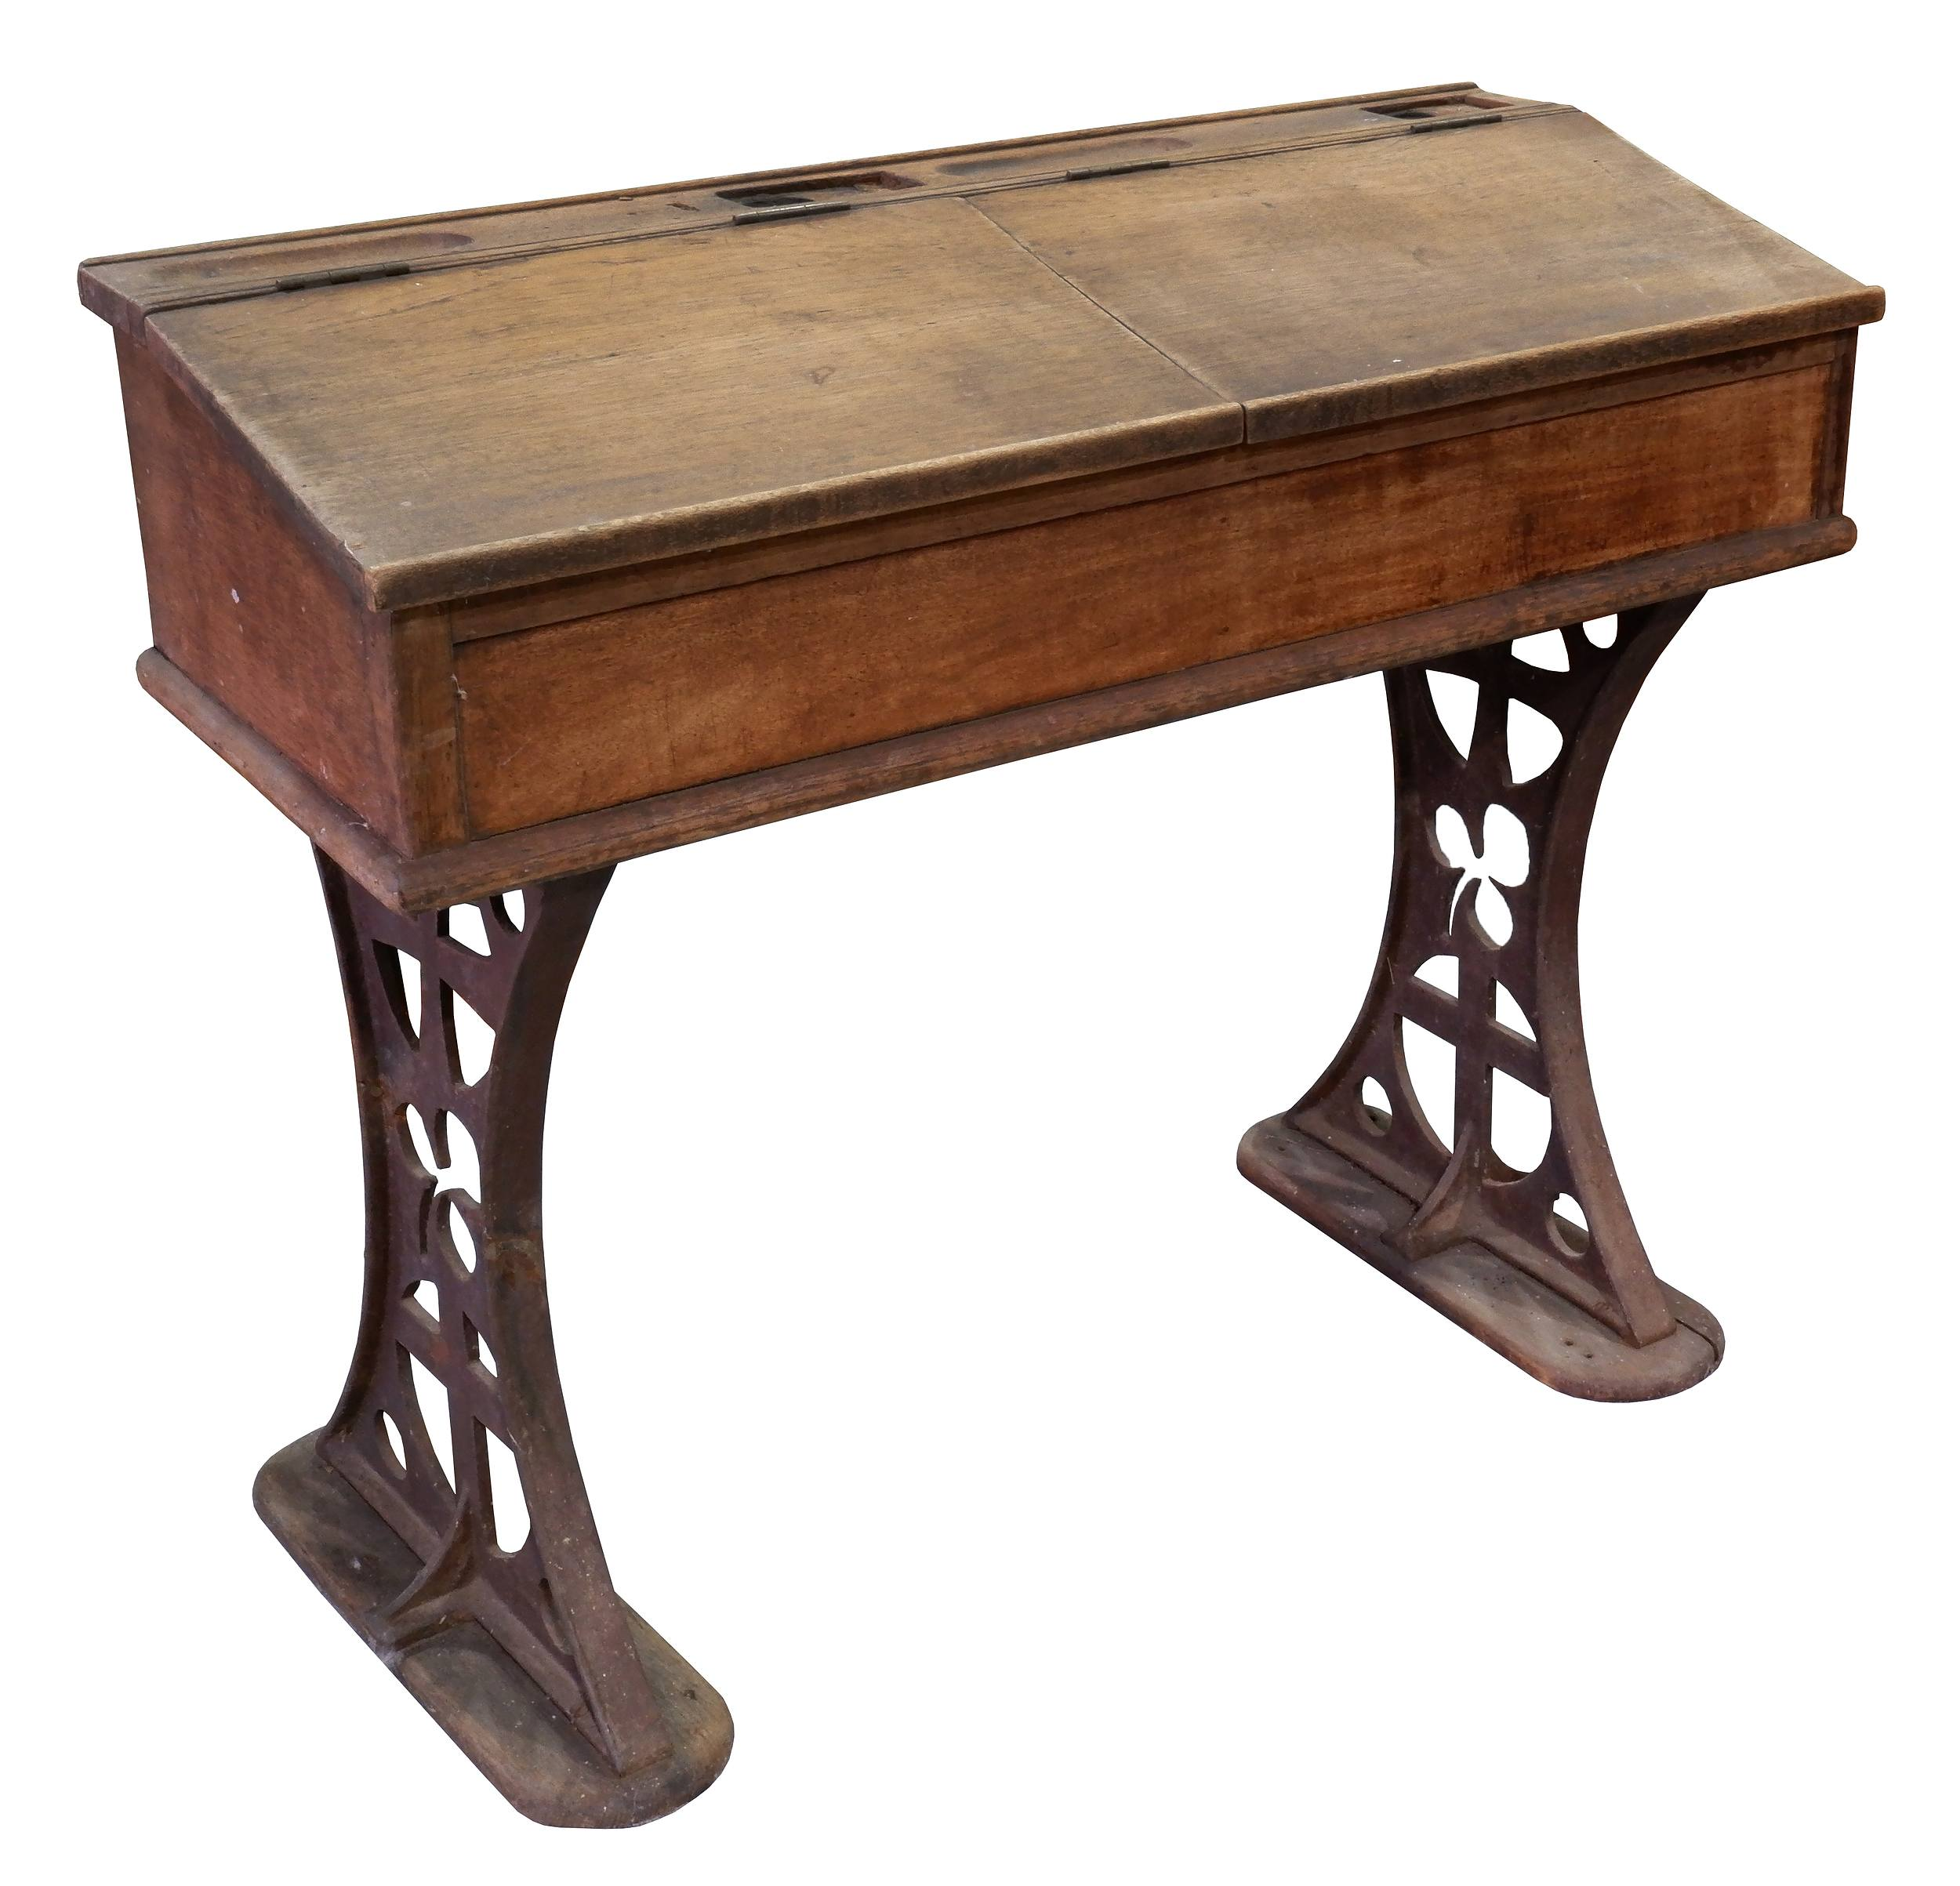 'Queensland Catholic School Desk With Cast Iron Legs Decorated with the Medieval Cross, Shamrock and Catholic Cross'